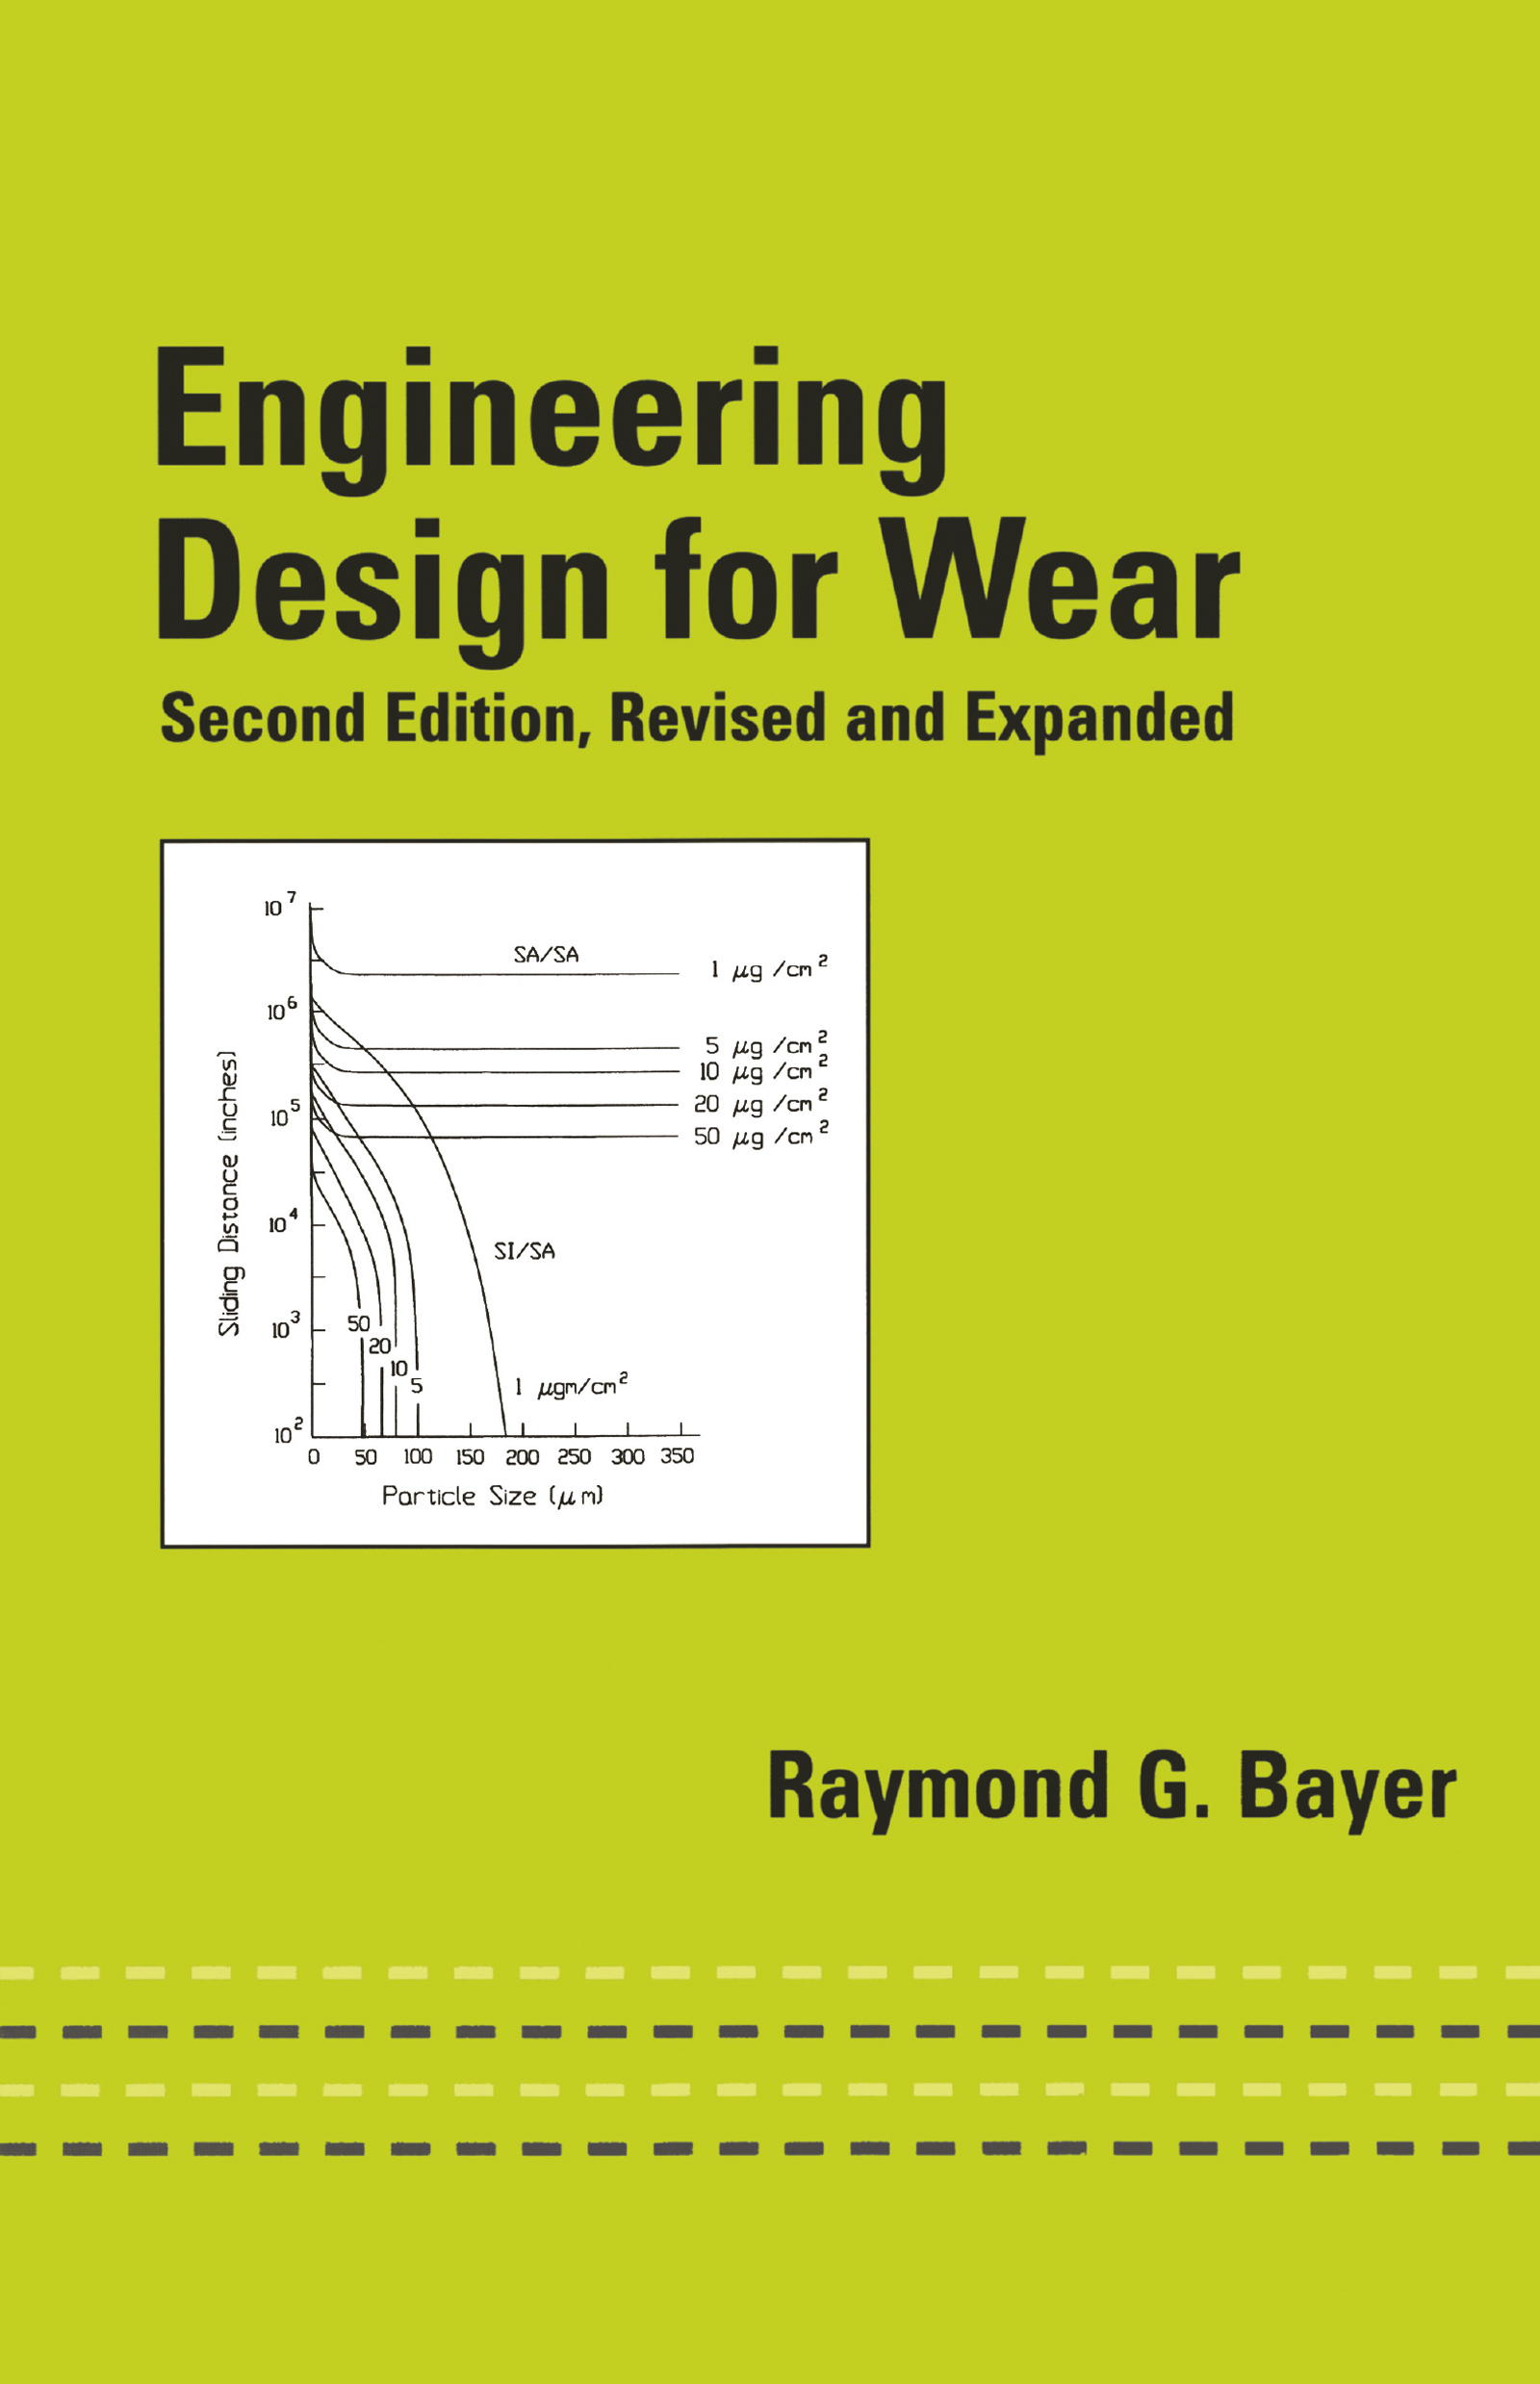 Engineering Design for Wear, Second Edition, Revised and Expanded book cover